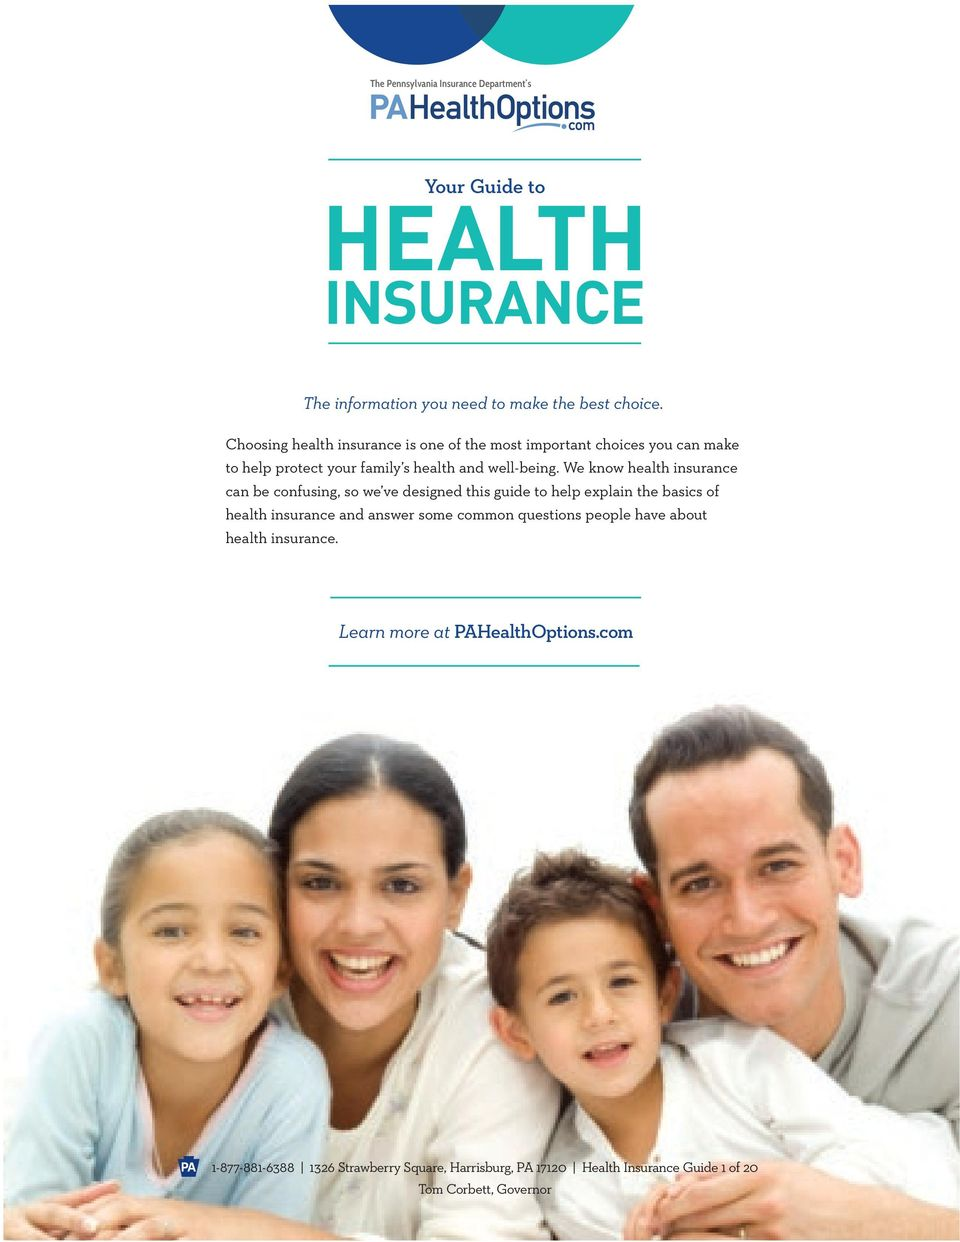 We know health insurance can be confusing, so we ve designed this guide to help explain the basics of health insurance and answer